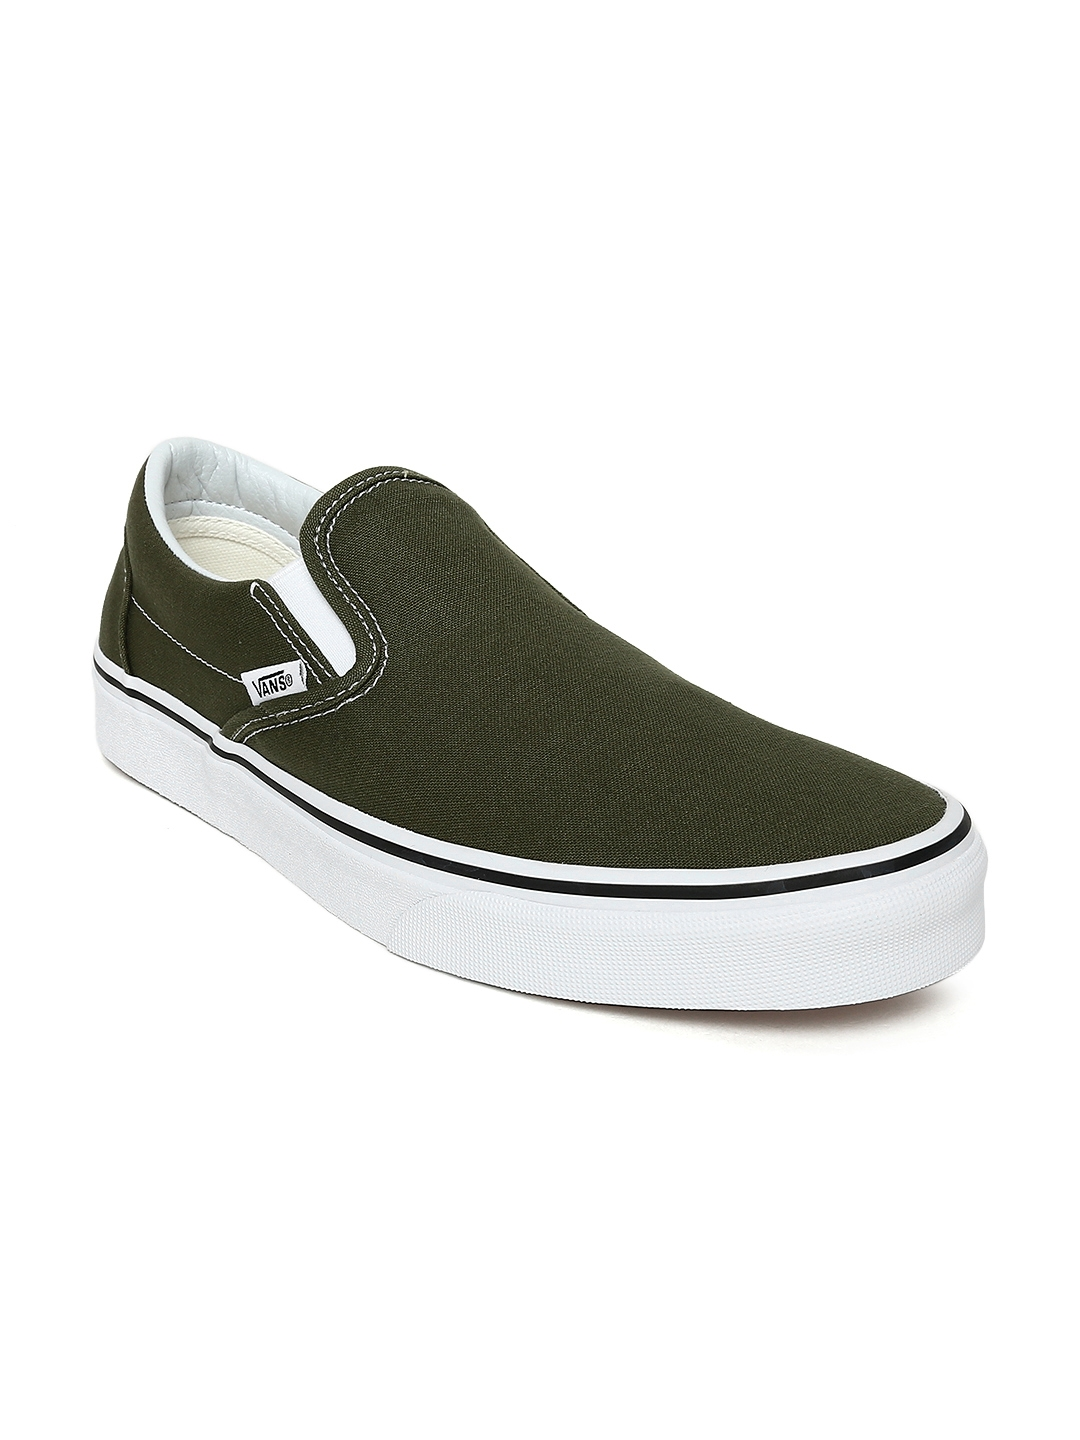 264fe06eb3 Buy Vans Unisex Olive Green Classic Slip On Sneakers - Casual Shoes ...